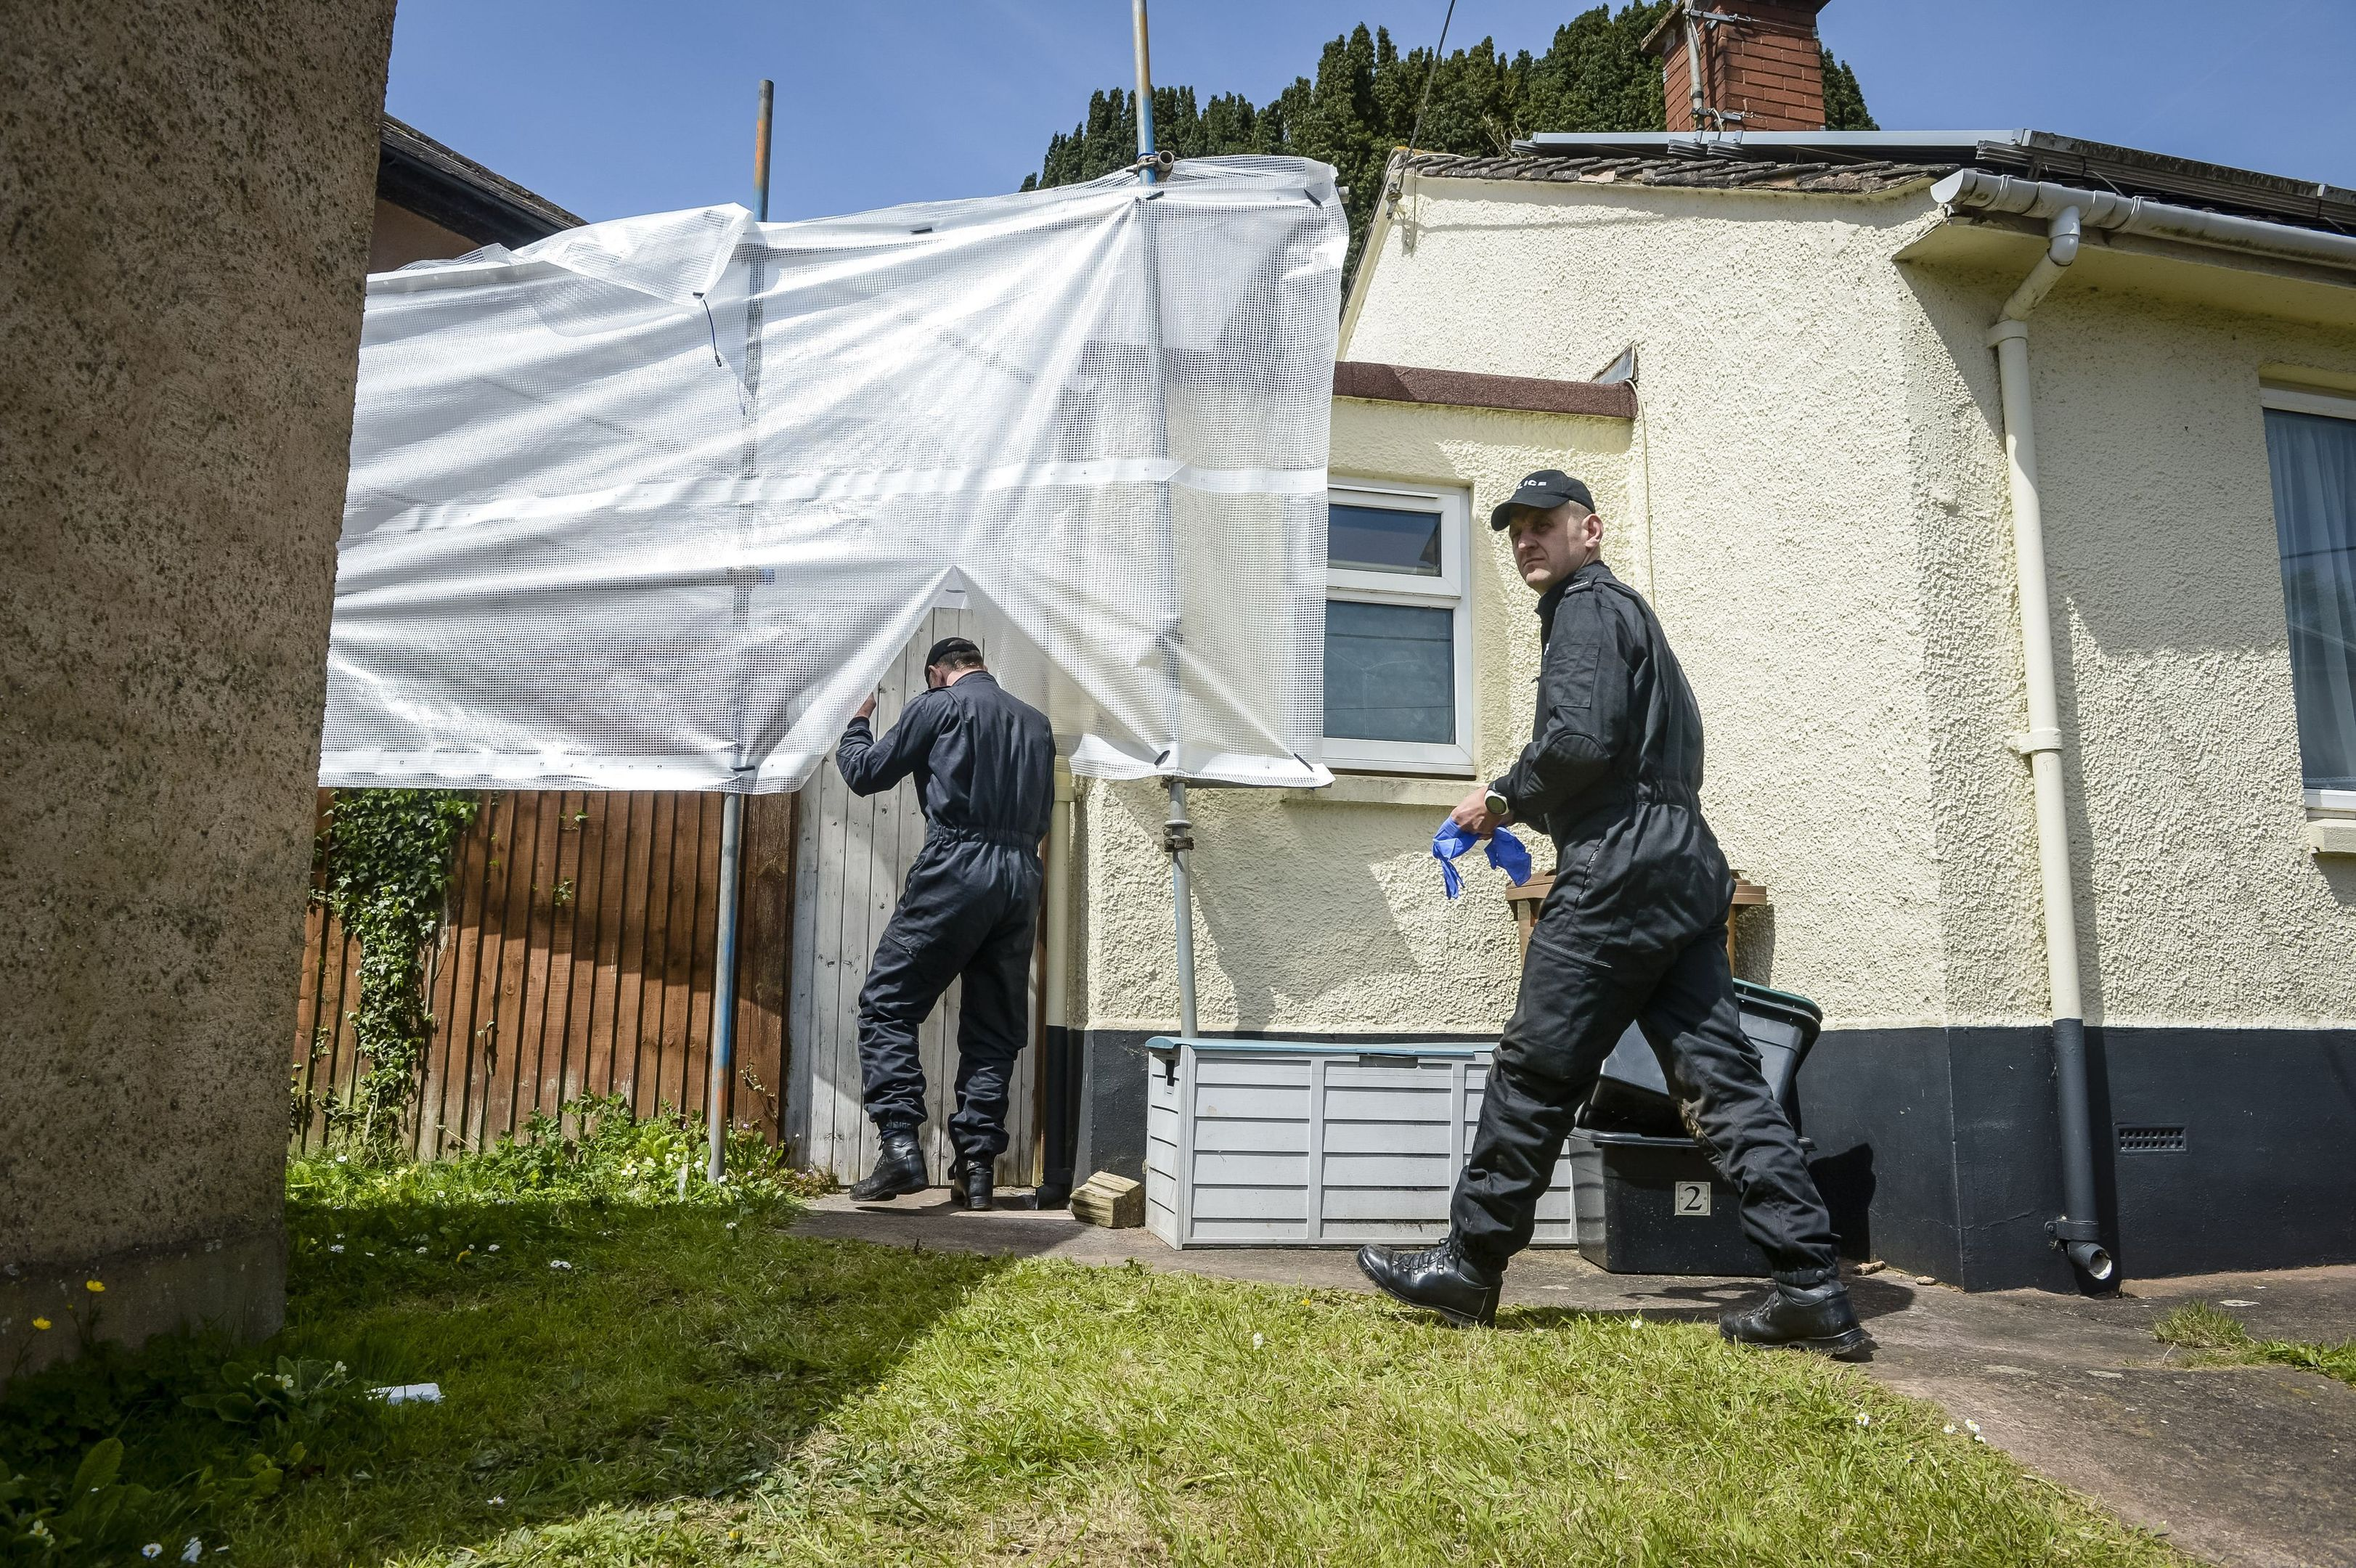 Police enter the tarpaulin covered garden at the couple's former home.